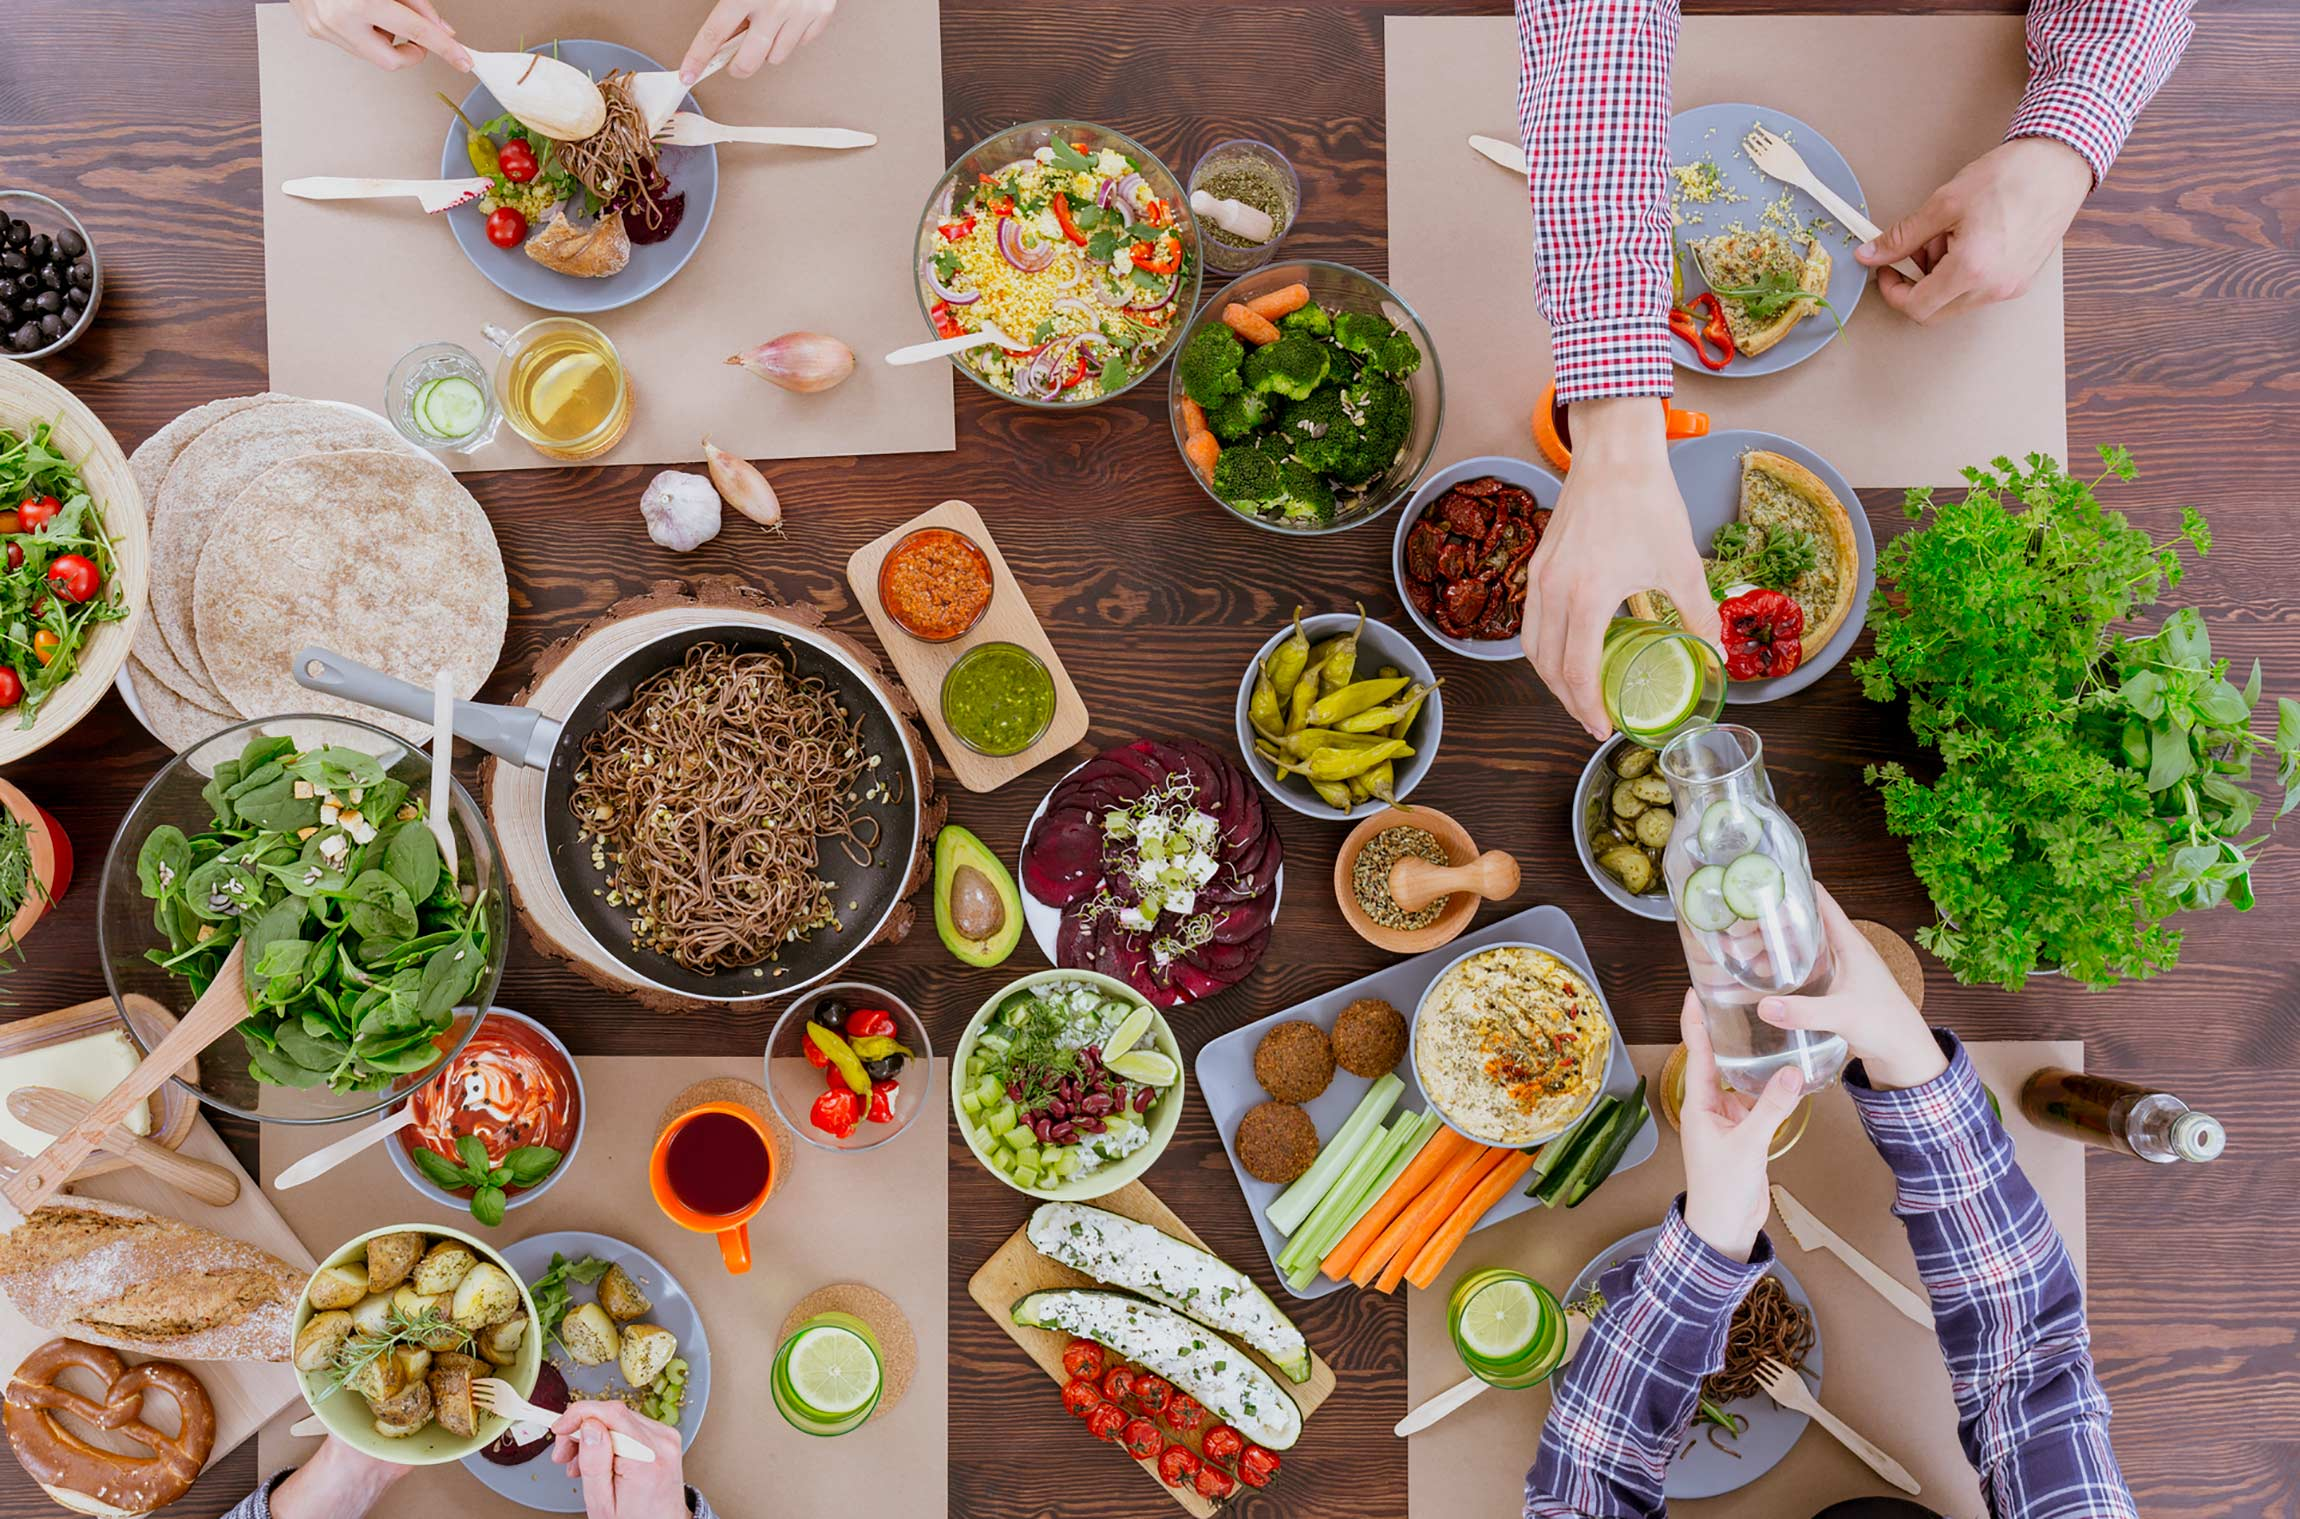 A spread of raw and cooked veggie dishes on a a table